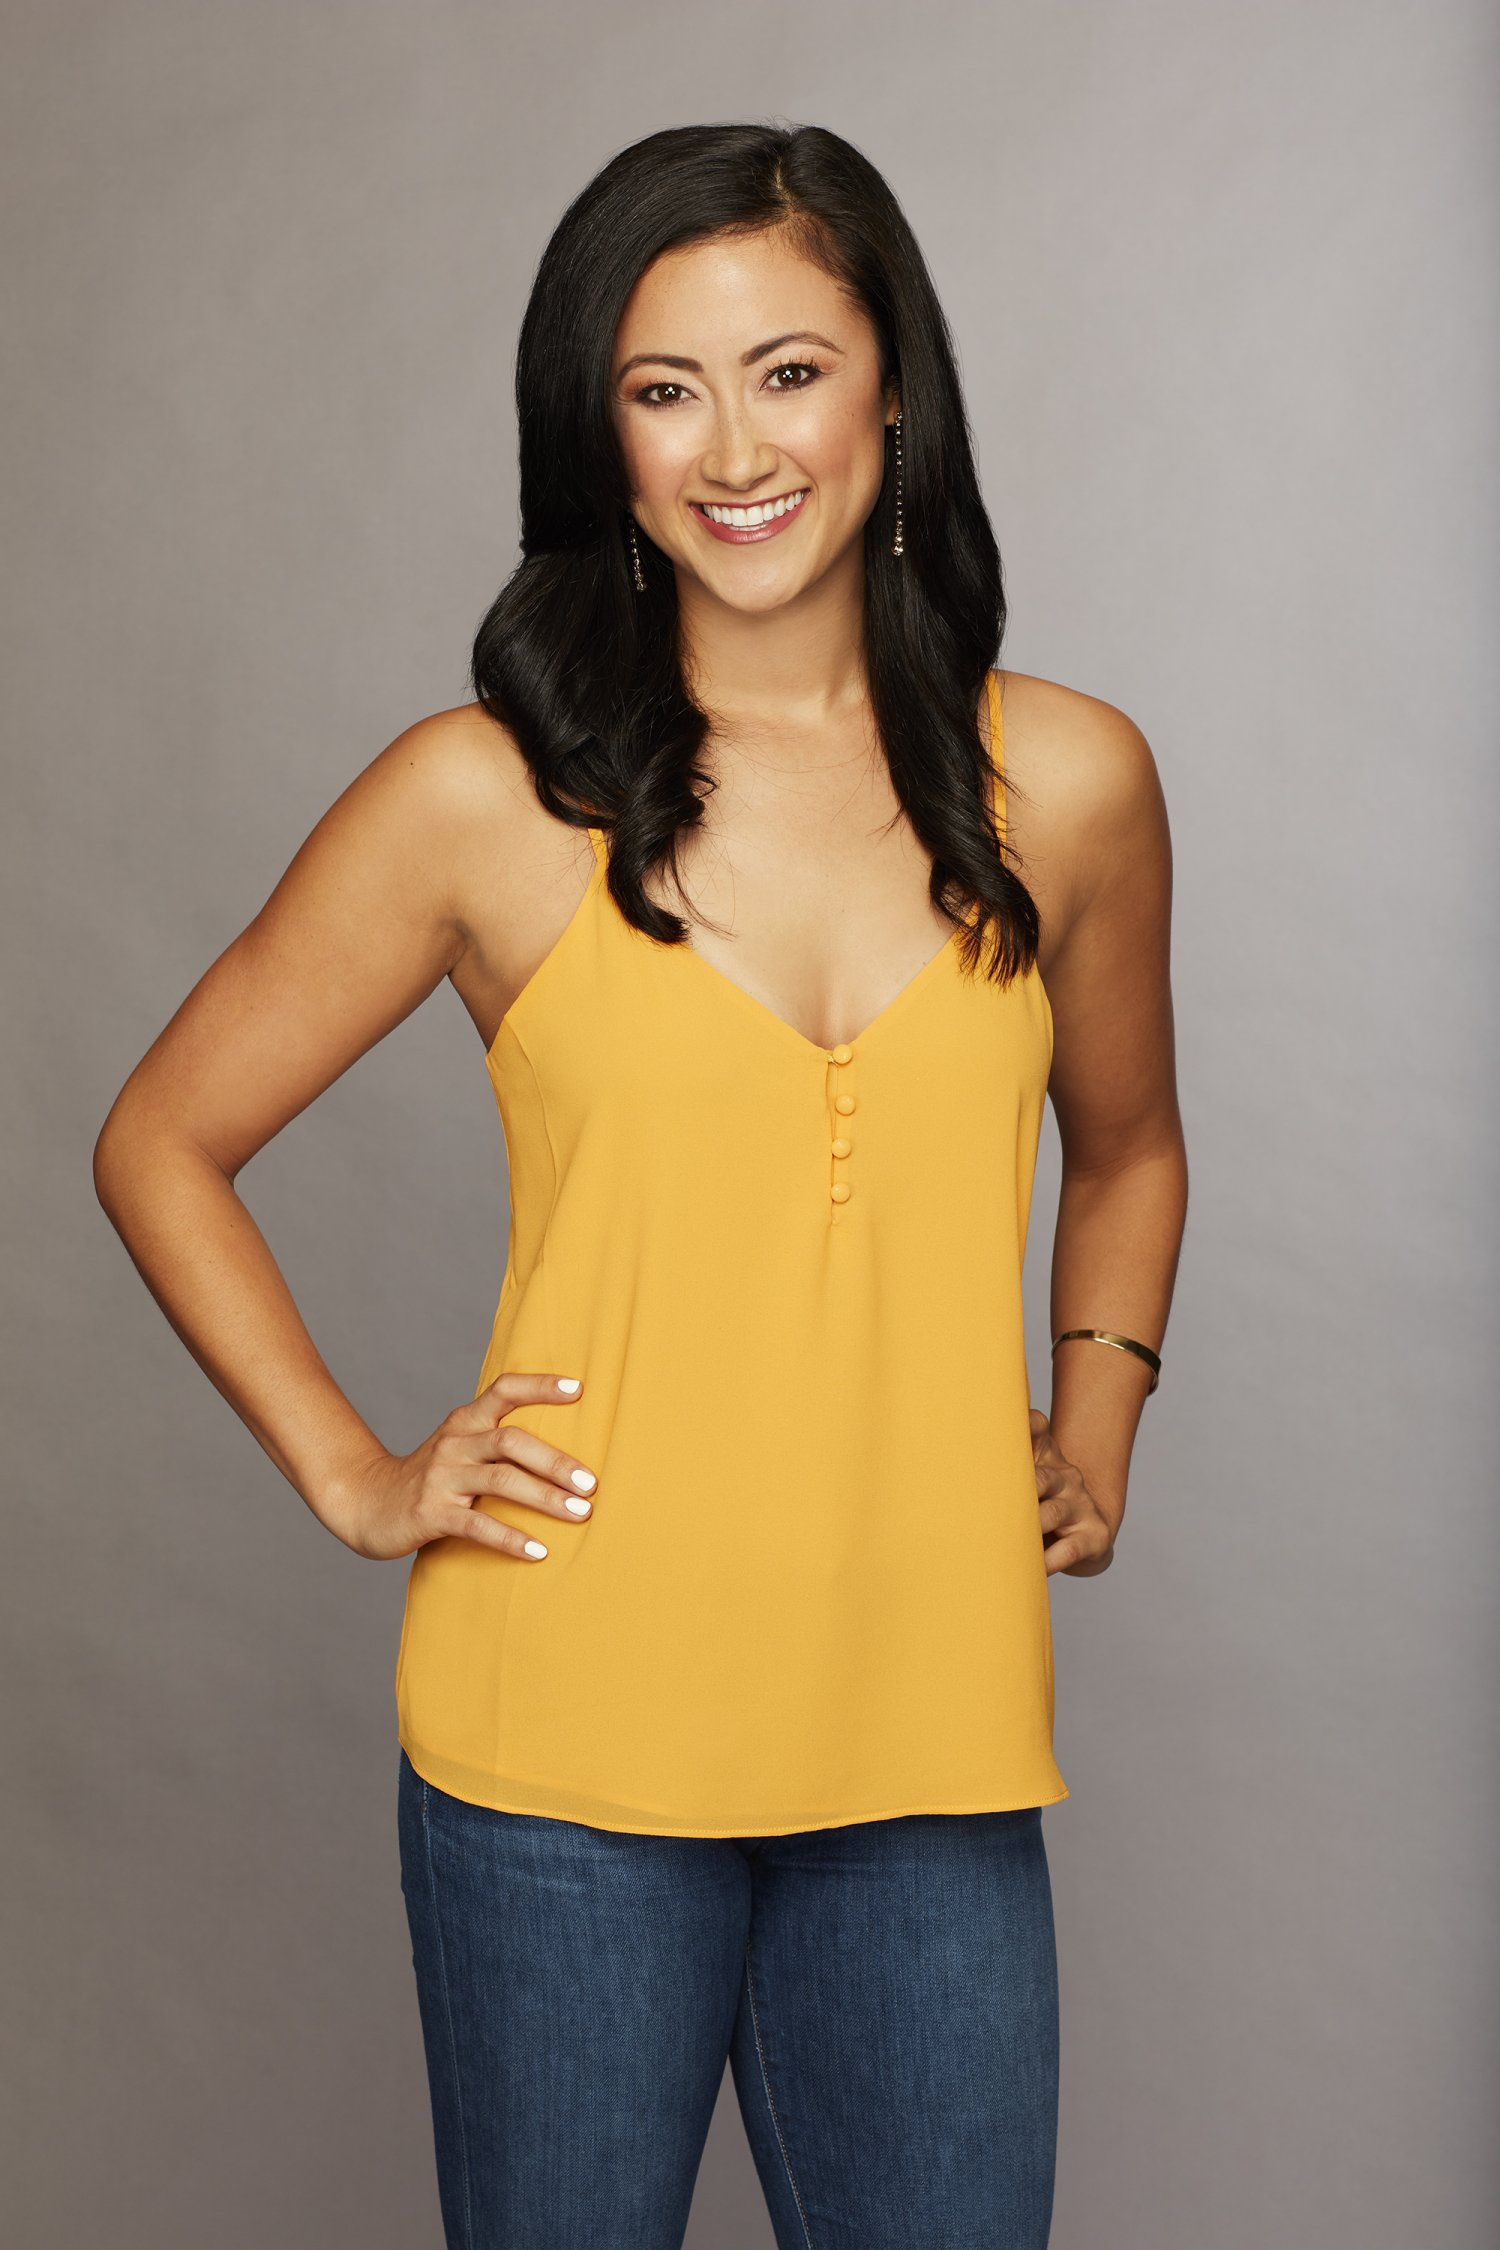 Bachelor 23 - Sydney Lotuaco - Discussion - *Sleuthing Spoilers*  - Page 2 4858-o